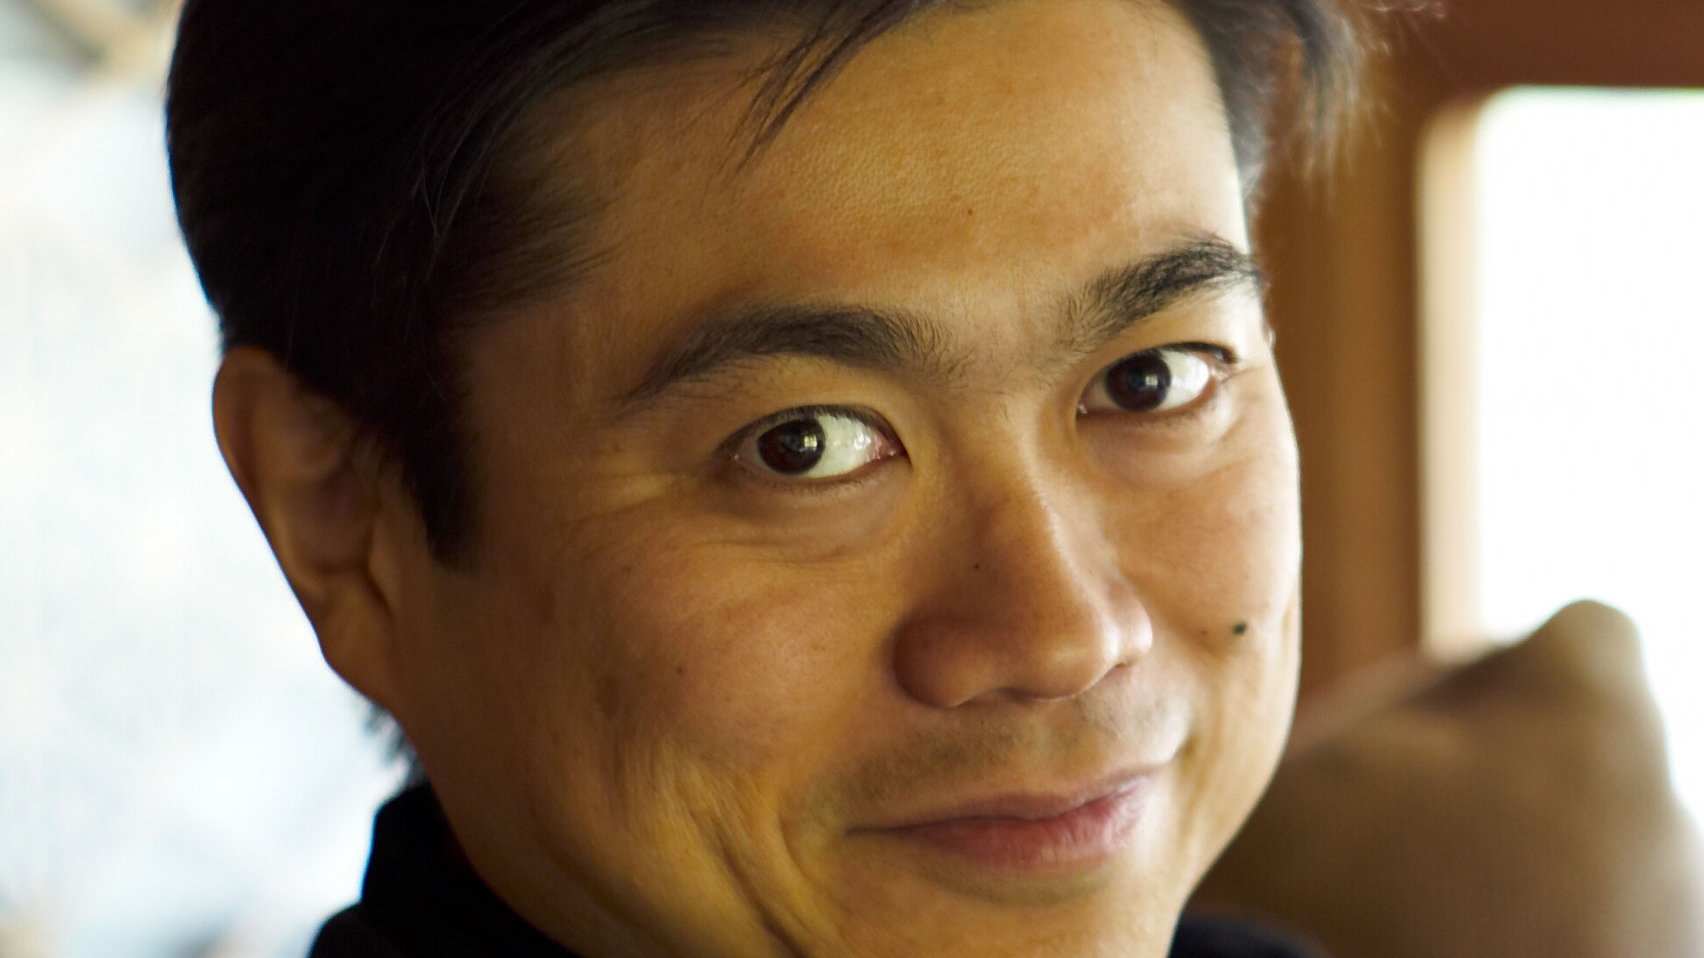 Toxic philanthropy: MIT Media Lab director, Joi Ito, resigns after allegedly covering up Jeffrey Epstein donations